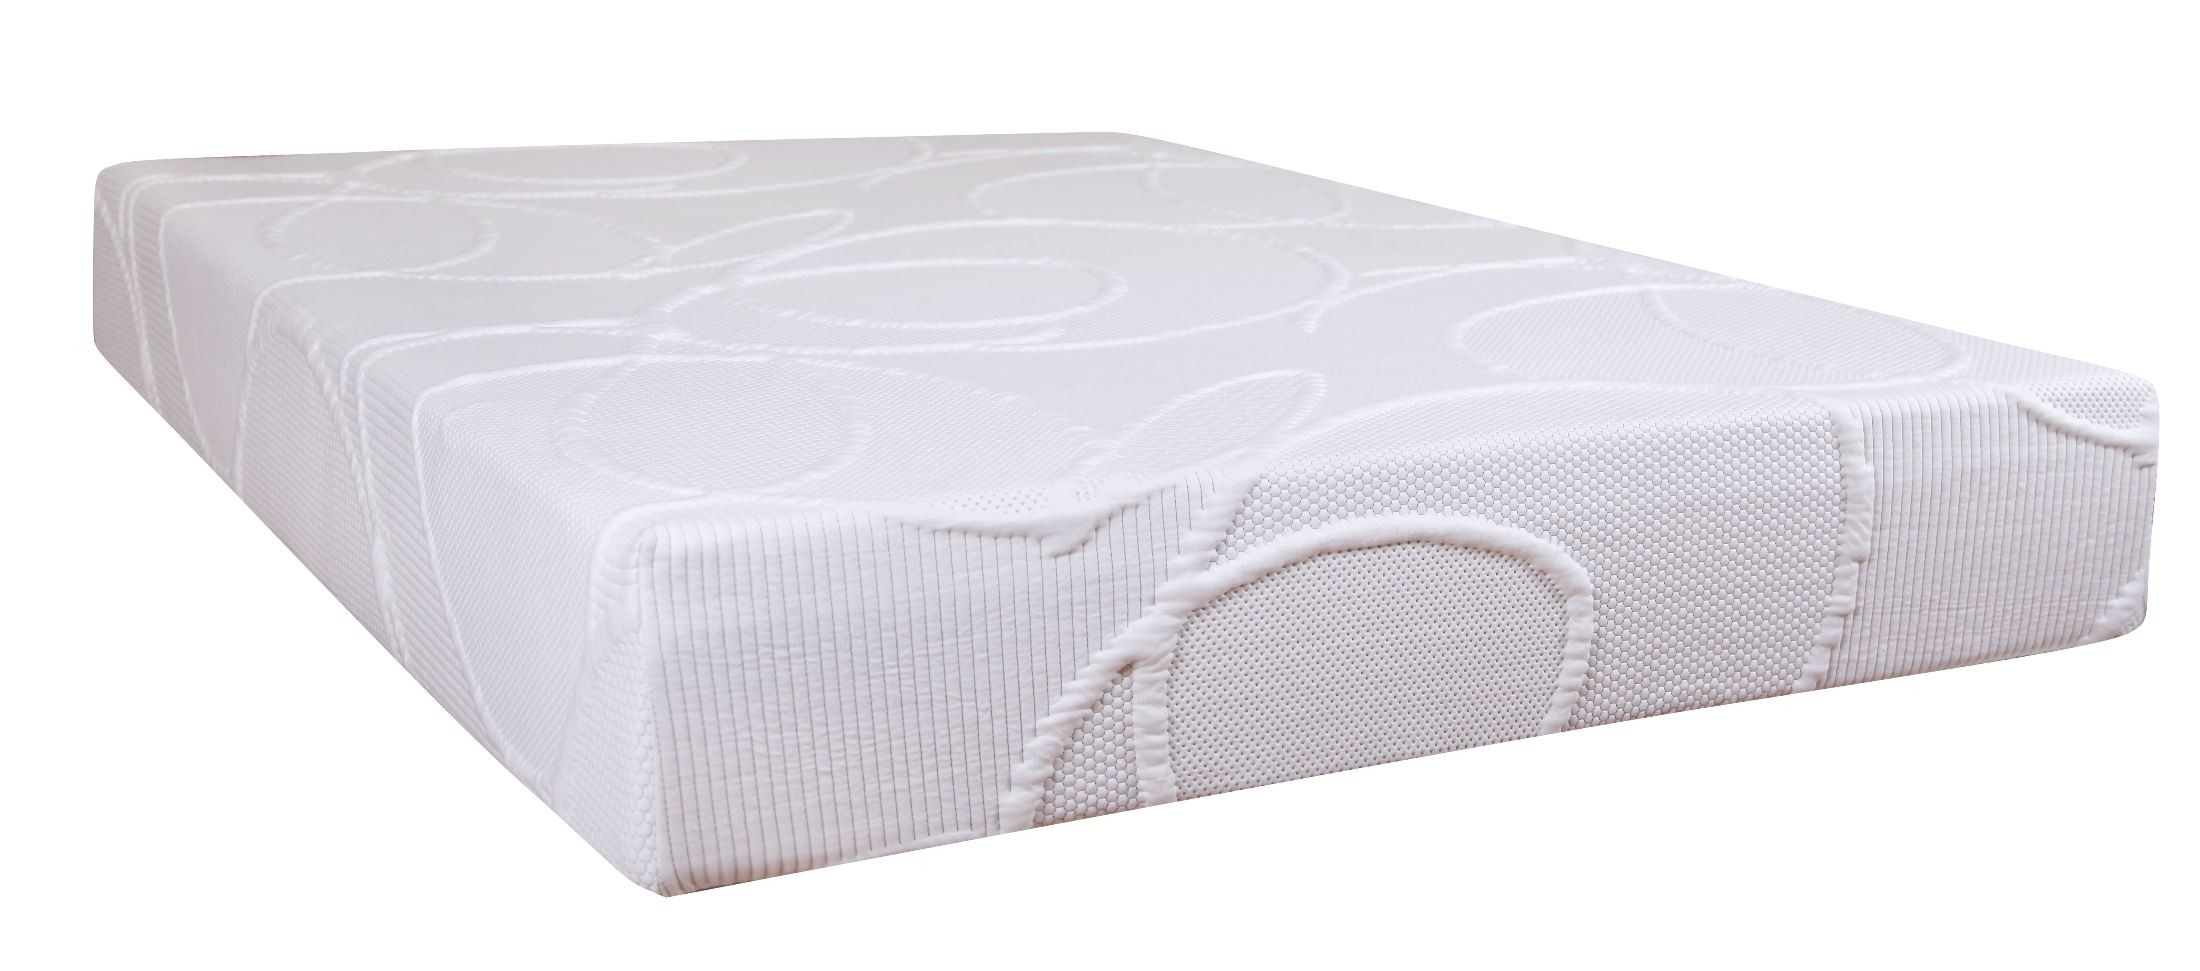 Polaris 10 memory foam xl twin size mattress from klaussner polaristxtmat coleman furniture Twin mattress xl